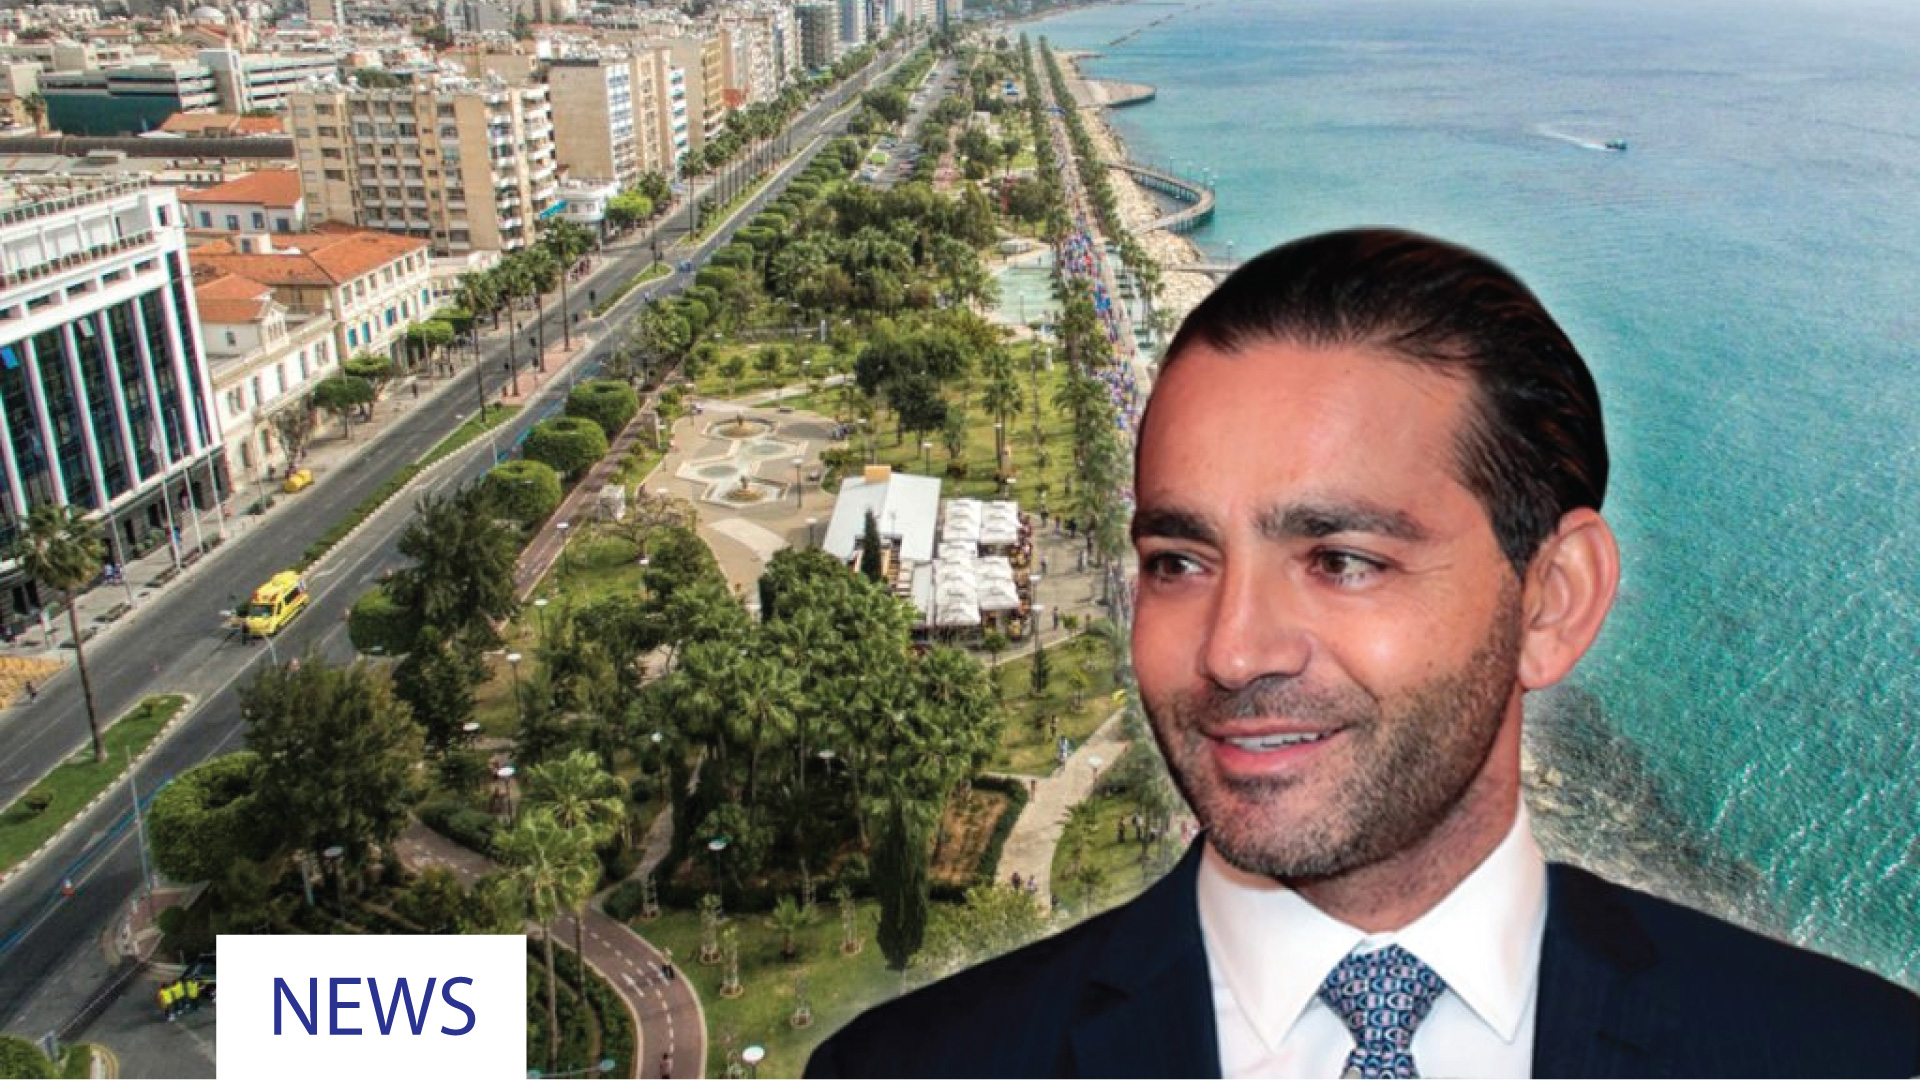 CYPRUS SEES A POSITIVE STEADY RECOVERY IN THE REAL ESTATE MARKET FOR 2018